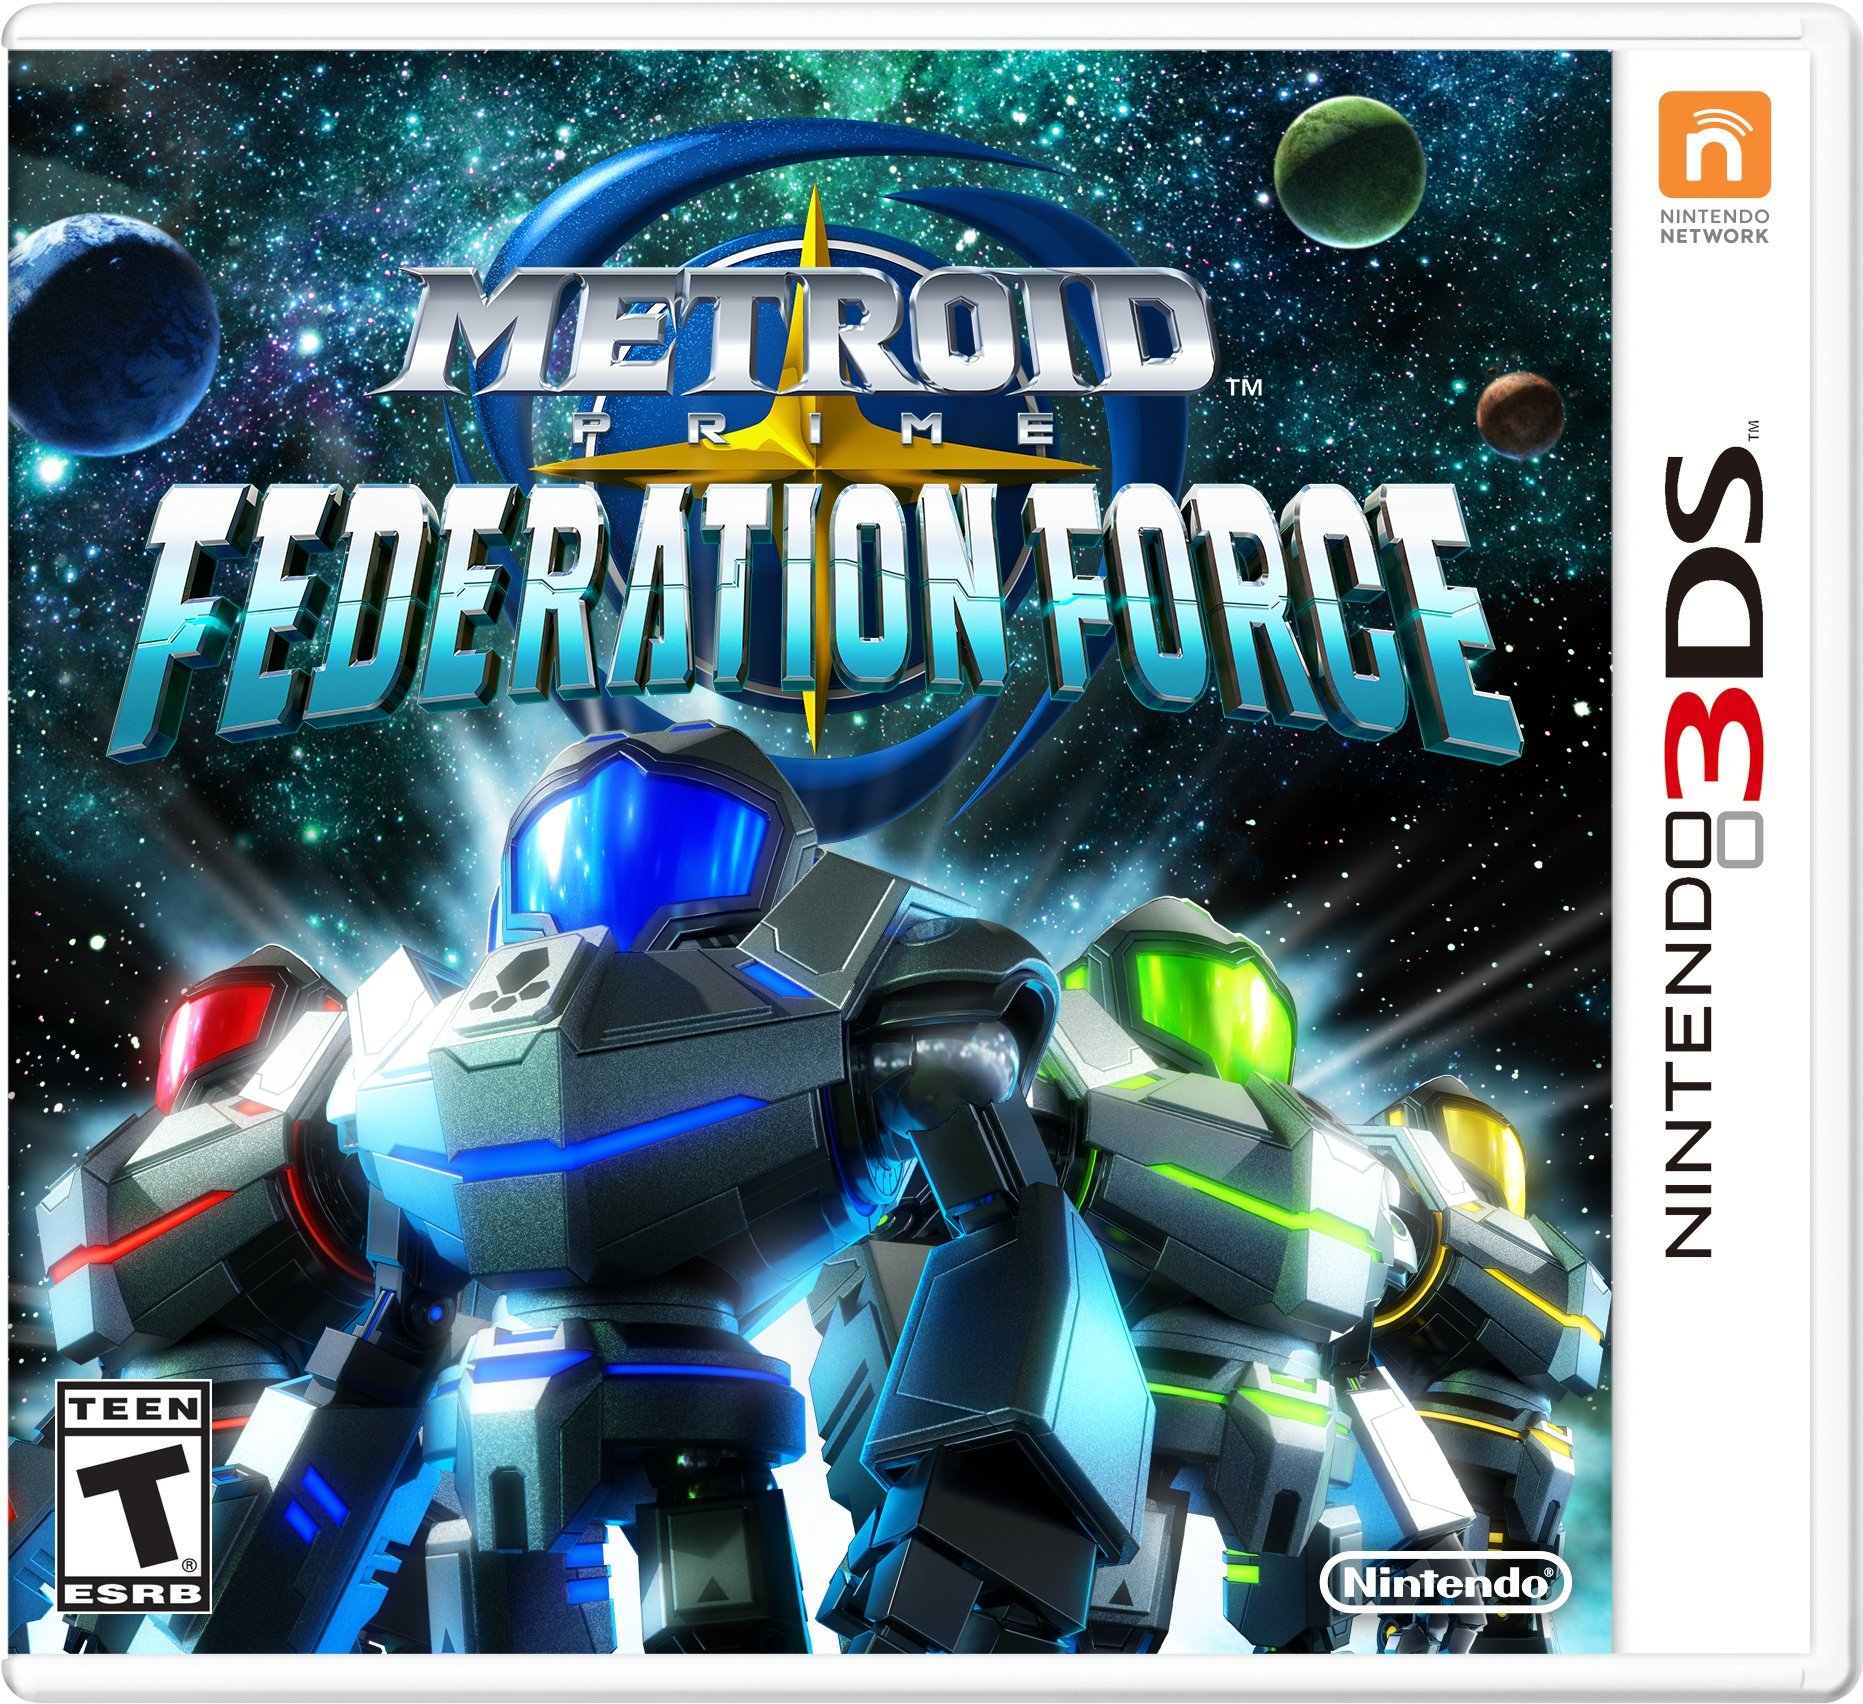 Image result for metroid prime federation force 3ds